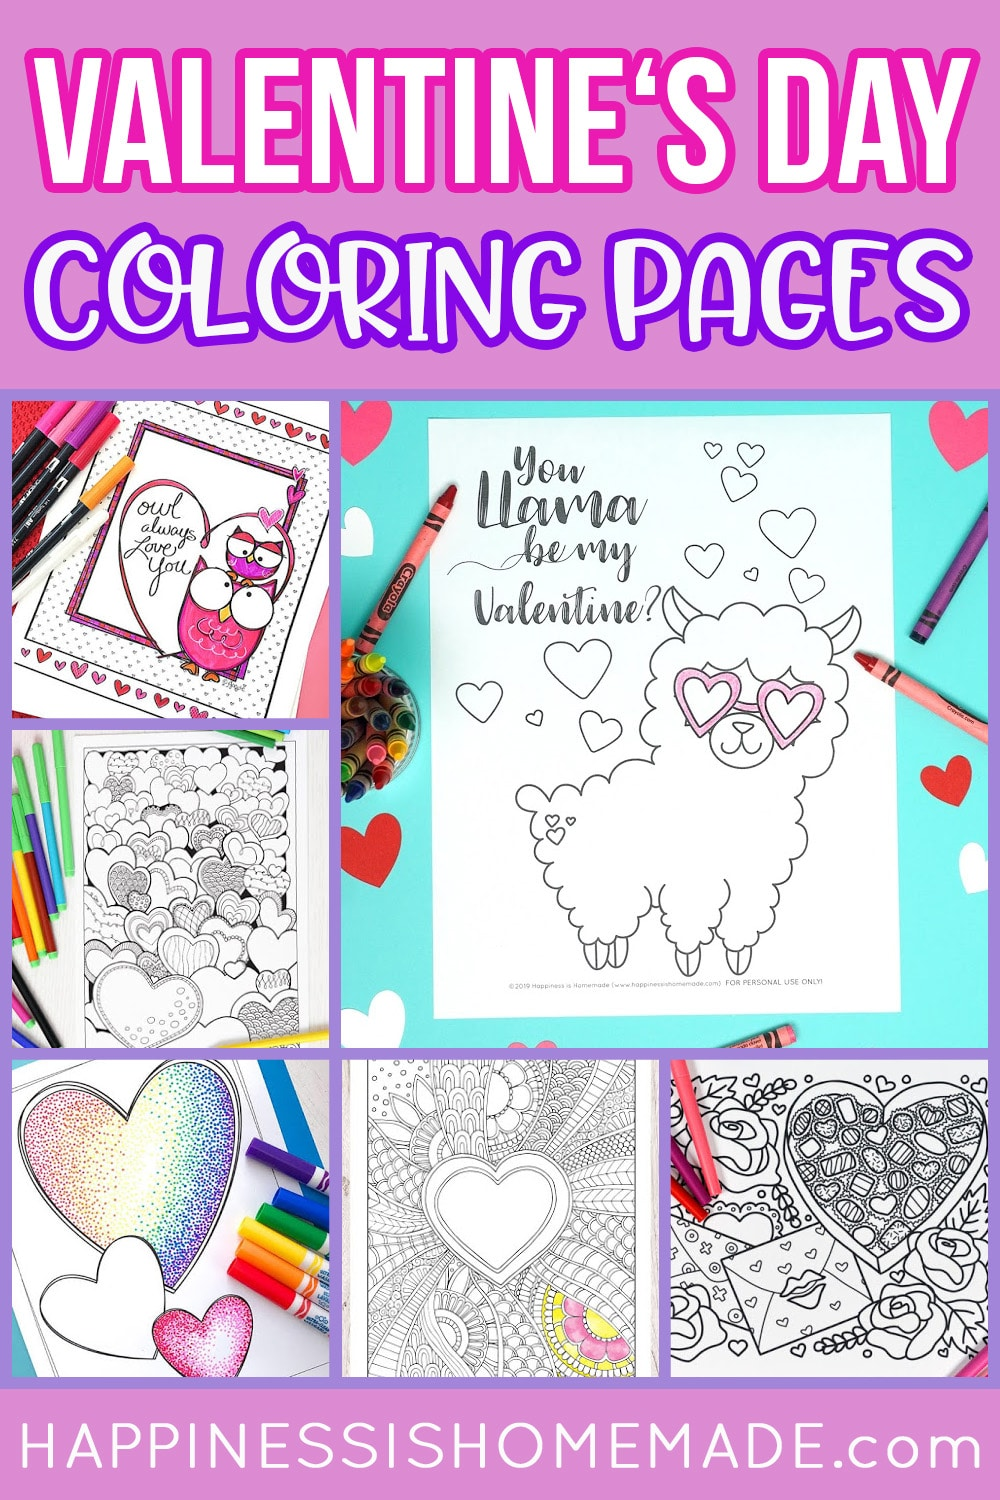 """Collage of free printable valentine coloring pages - six coloring sheets and """"Valentine's Day Coloring Pages"""" text on purple background"""